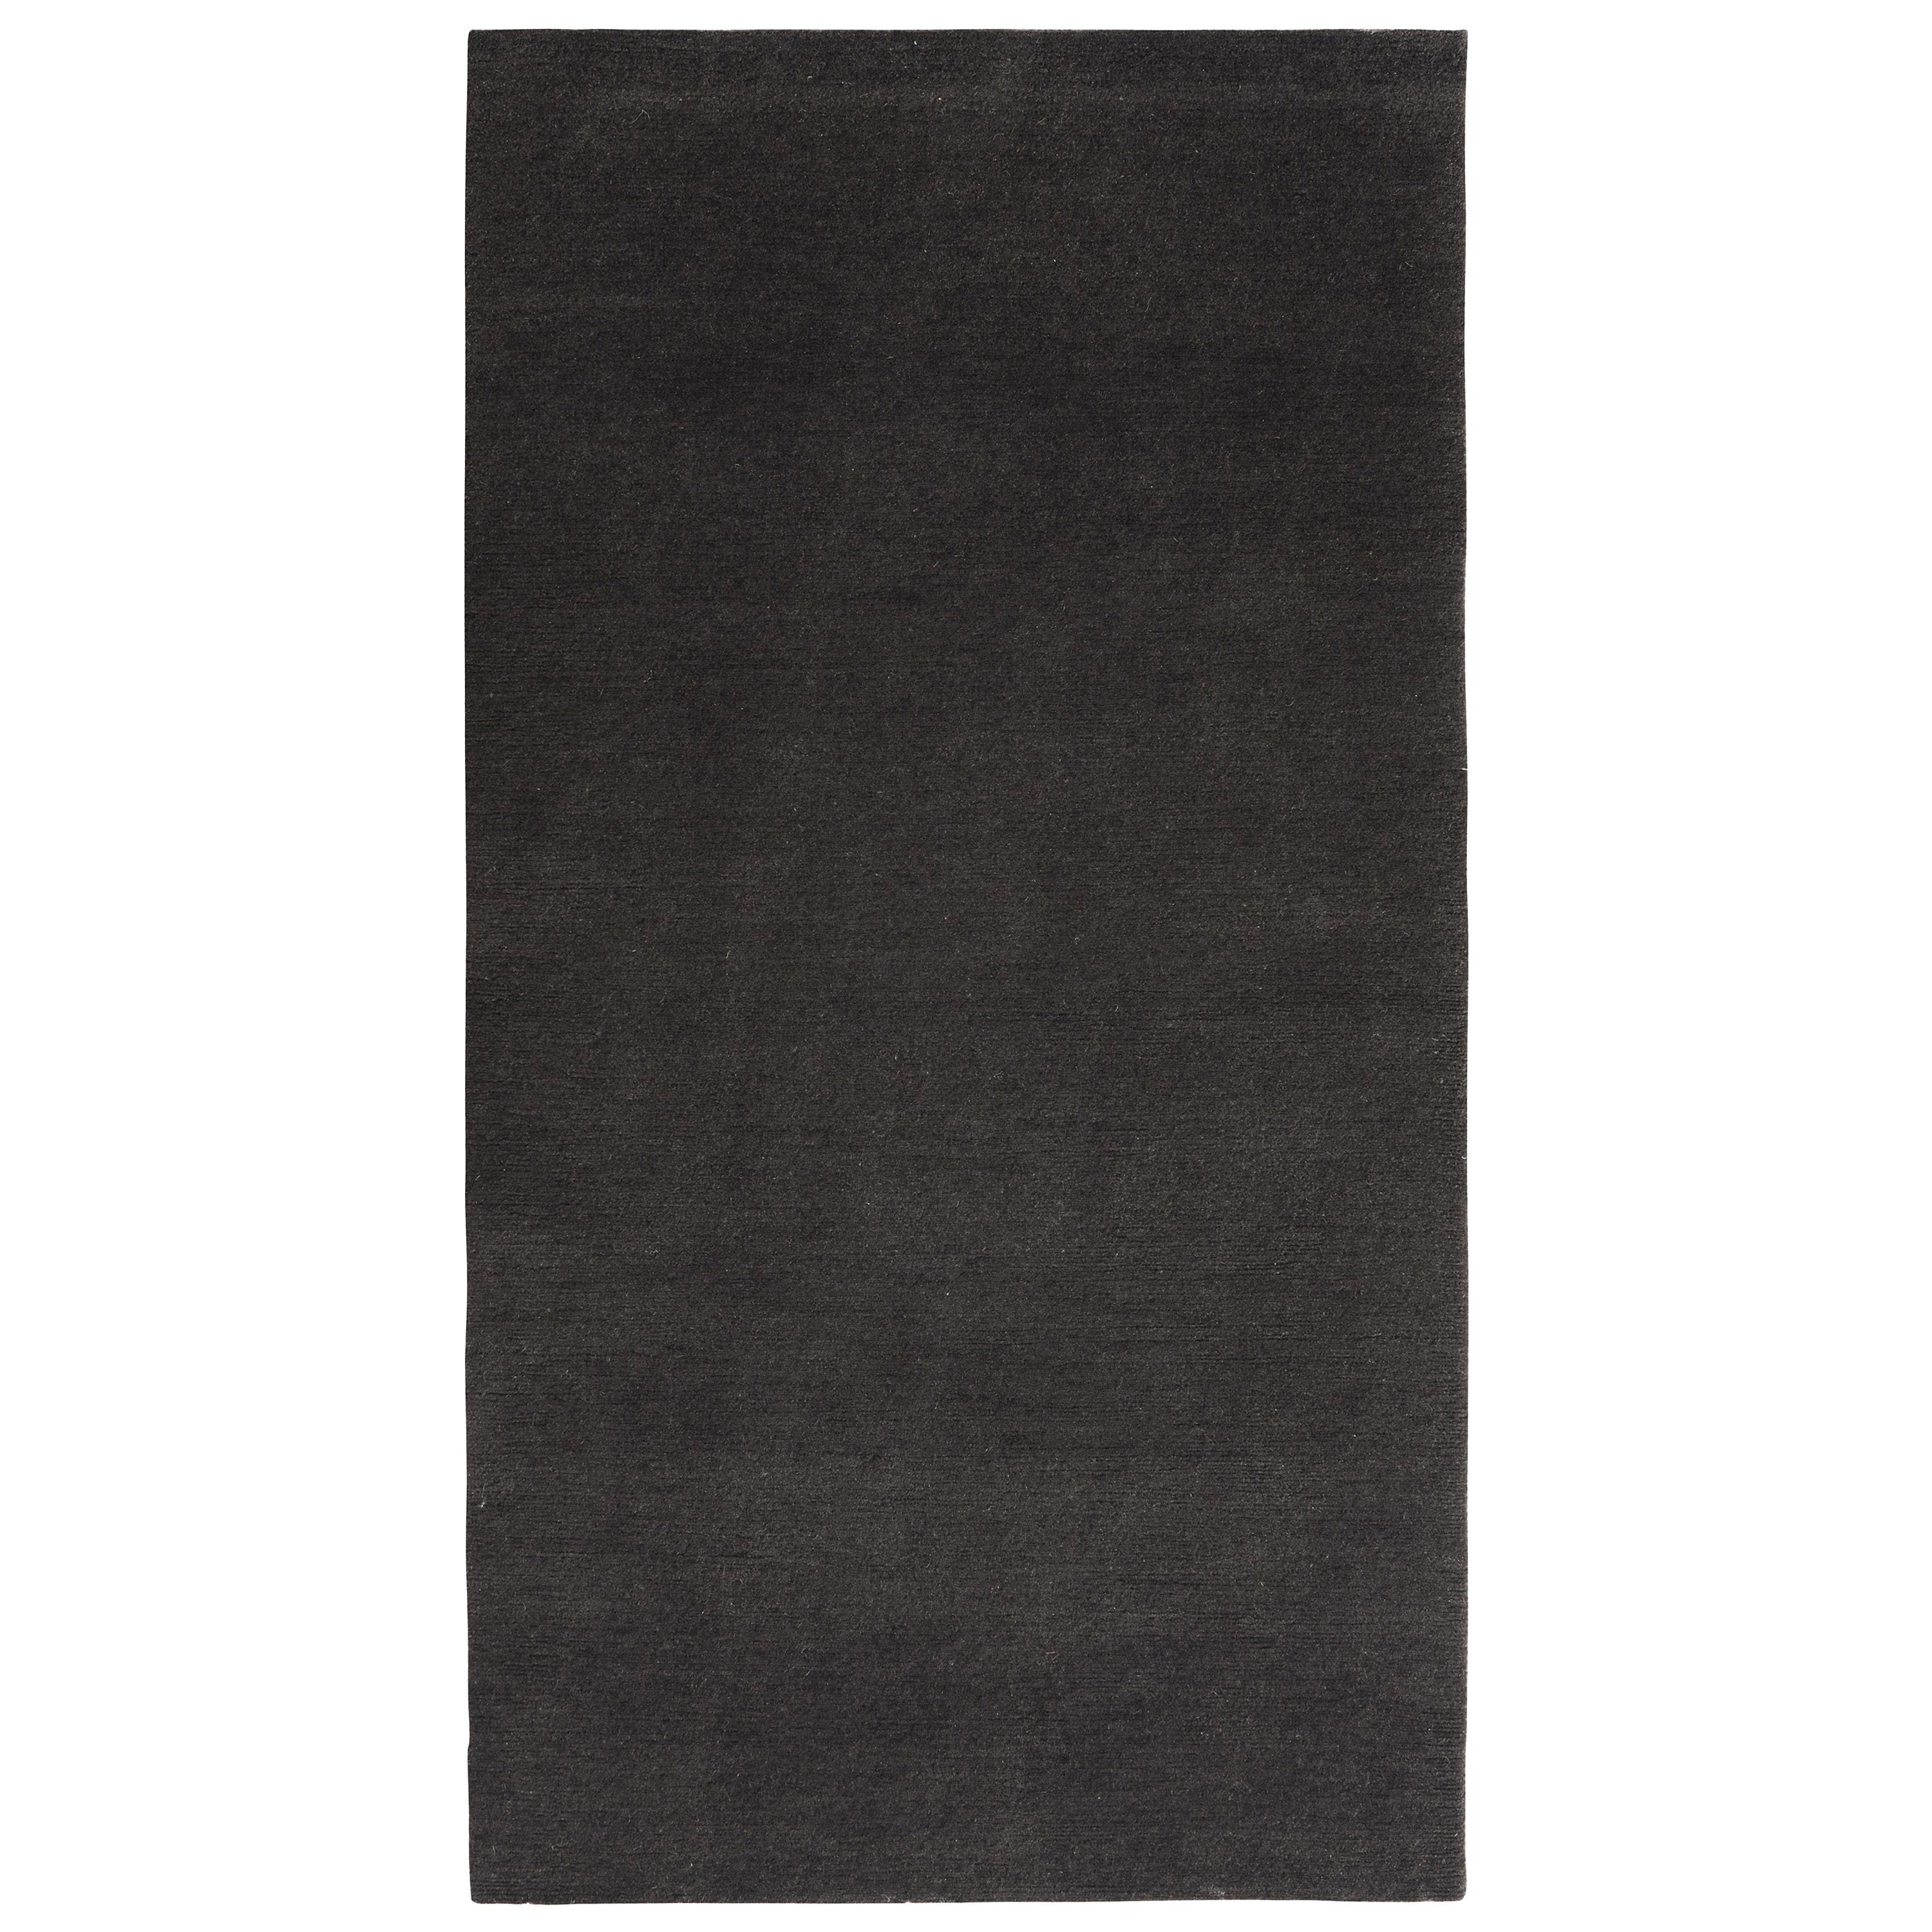 Hand Knotted Contemporary Solid Black Runner Rug